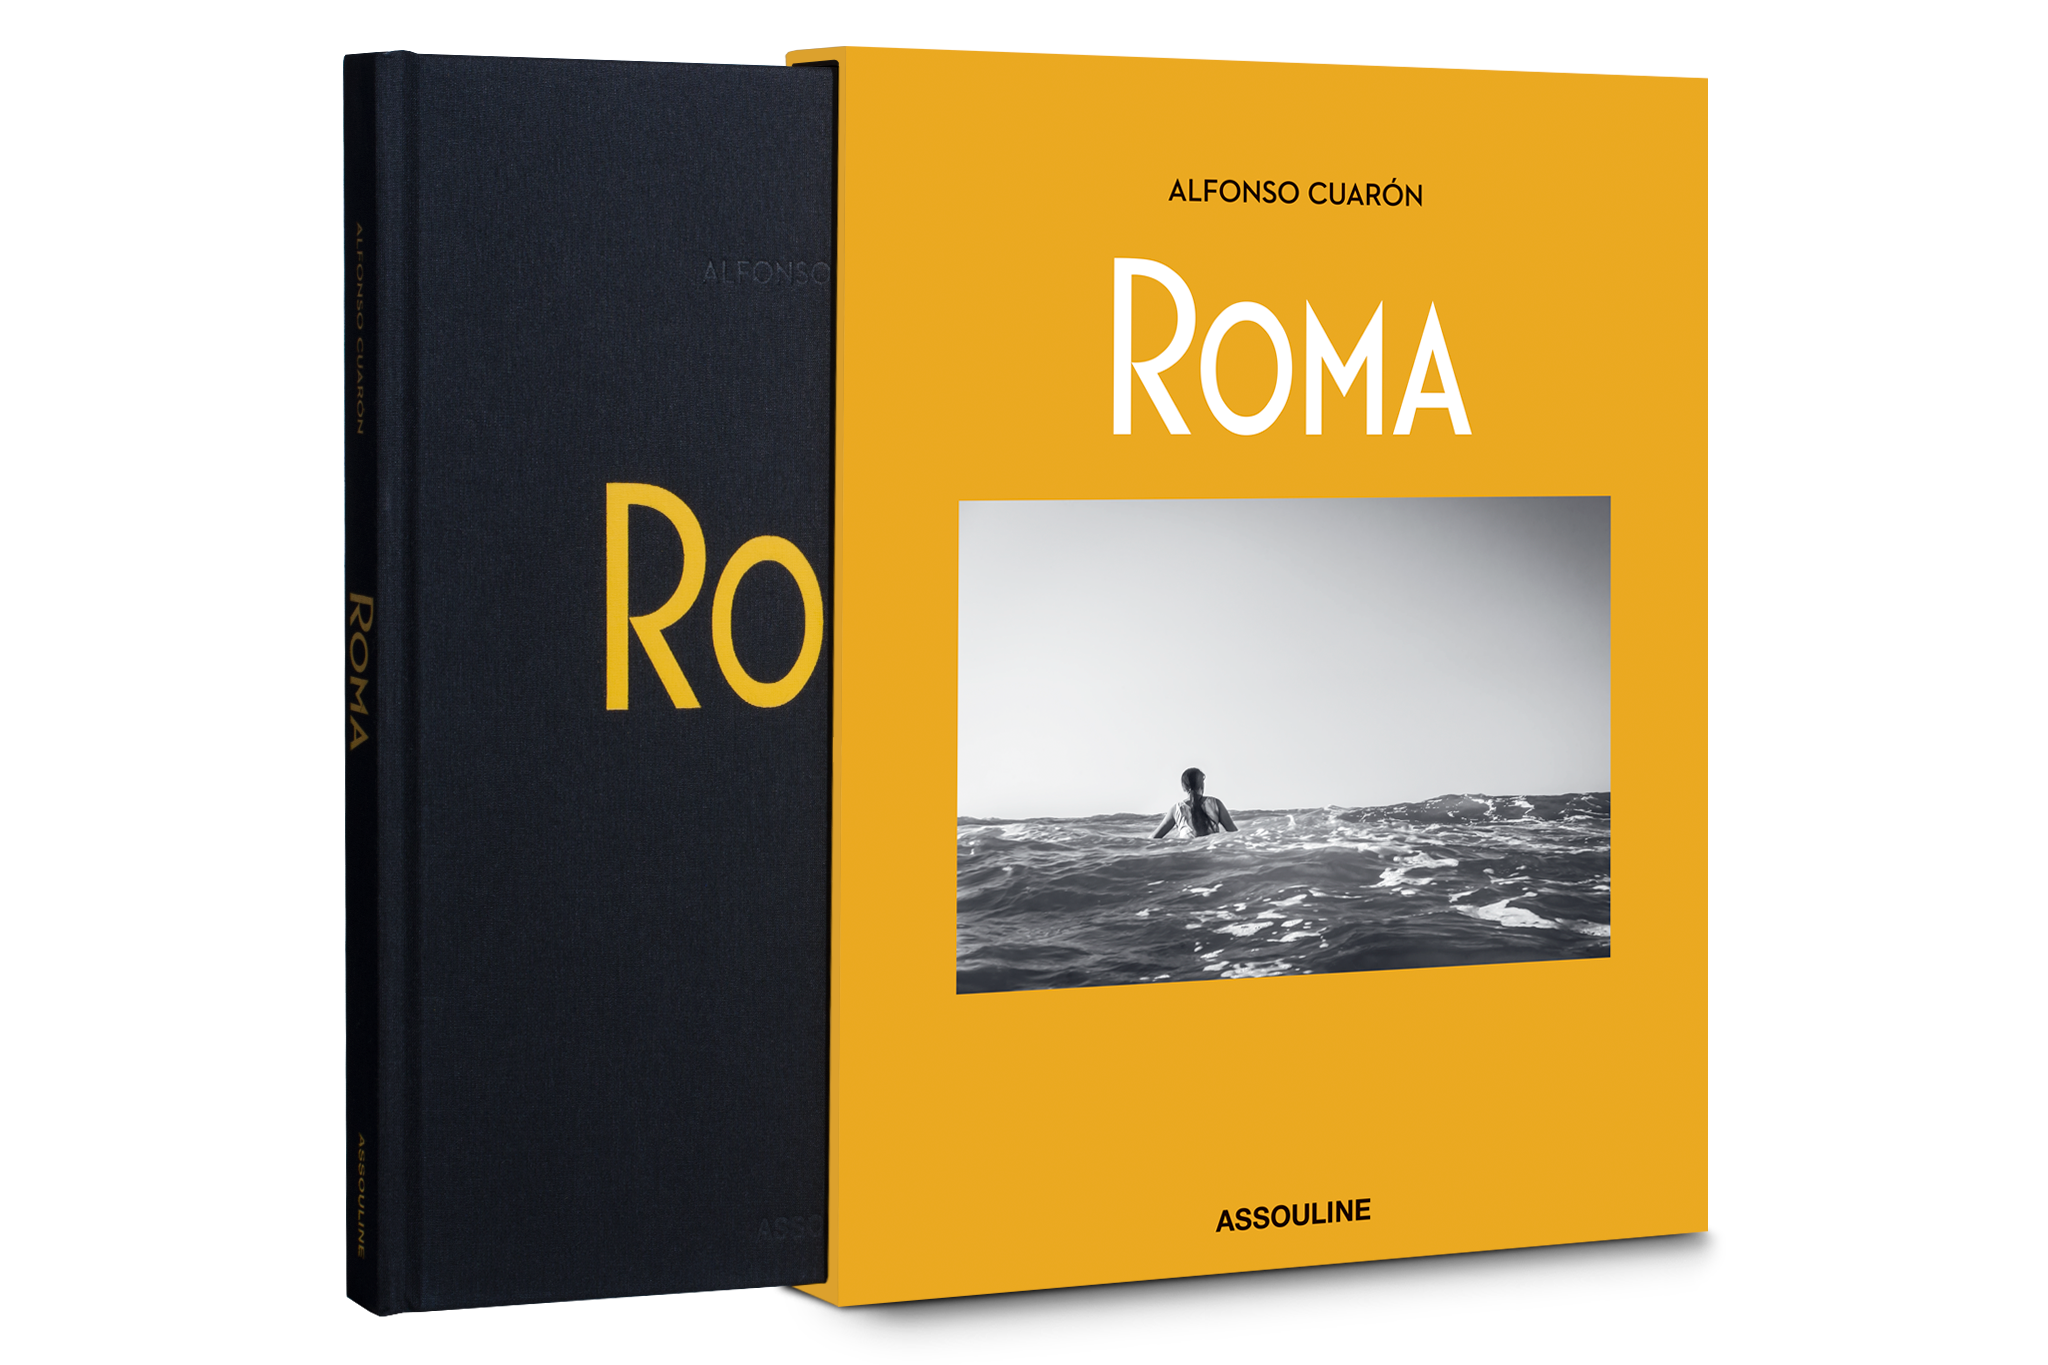 SLIPCASE-ROMA_2048x.png